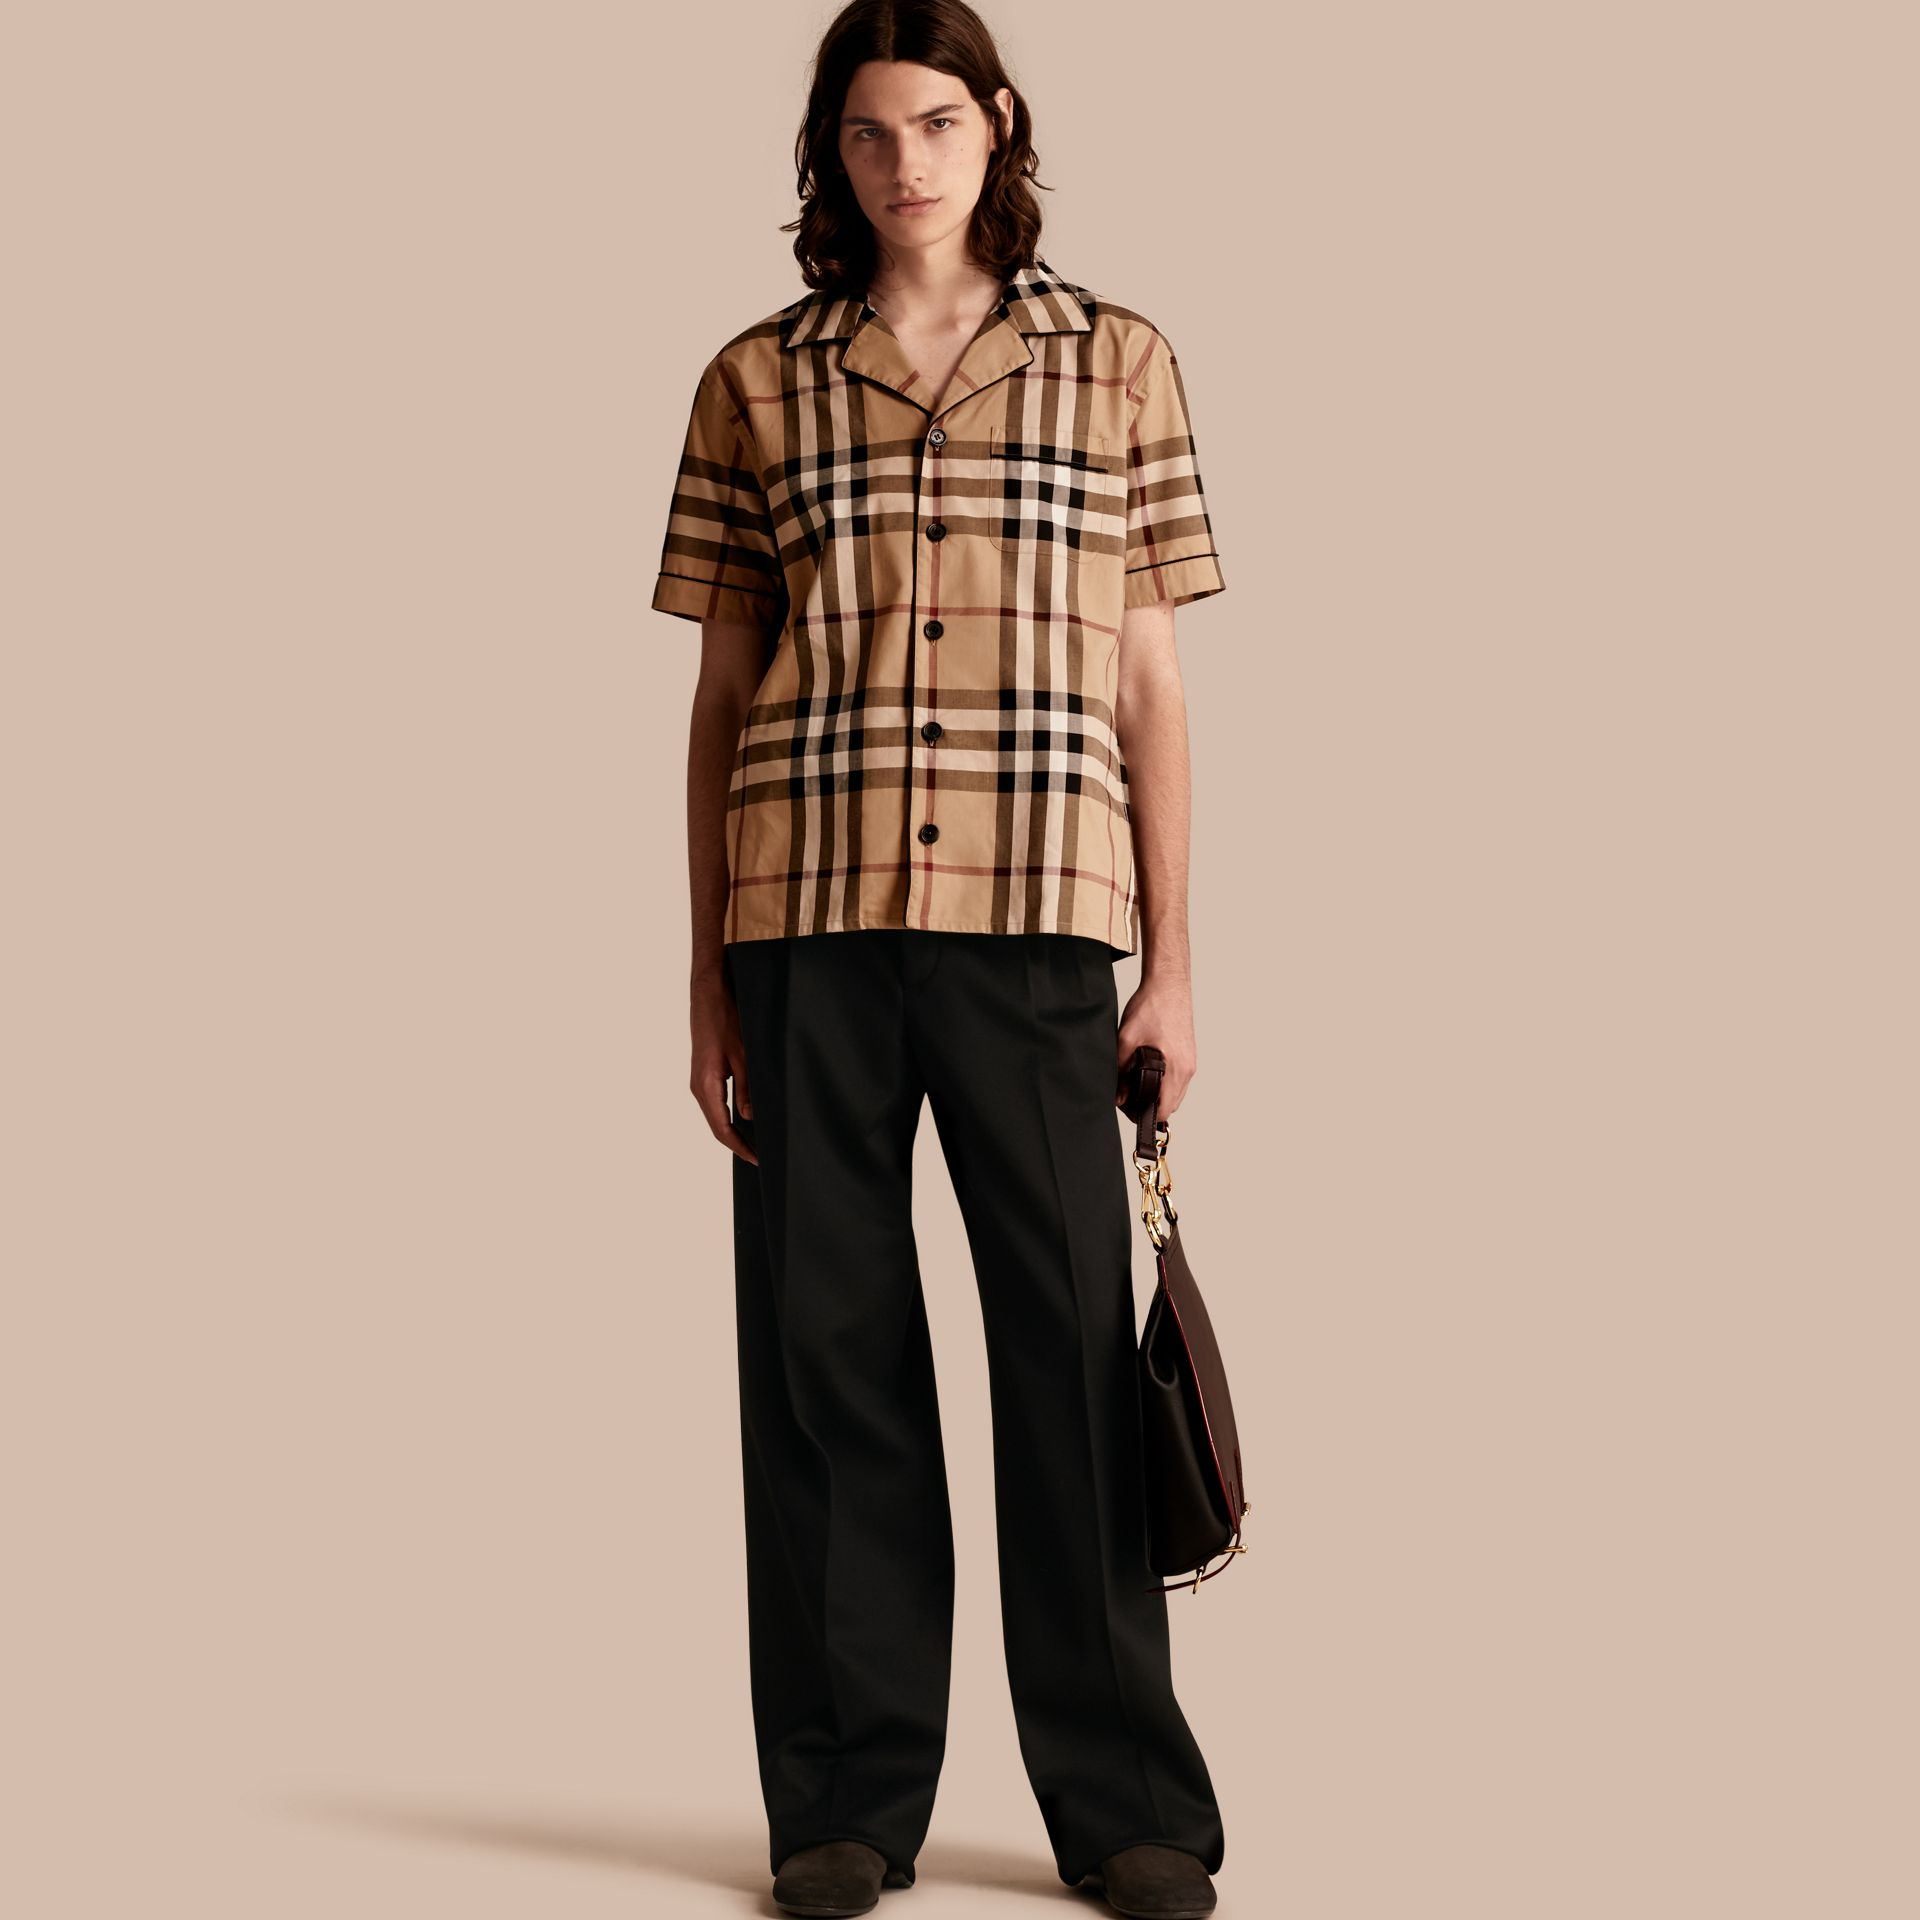 Camel Short-sleeved Check Cotton Pyjama-style Shirt Camel - gallery image 1